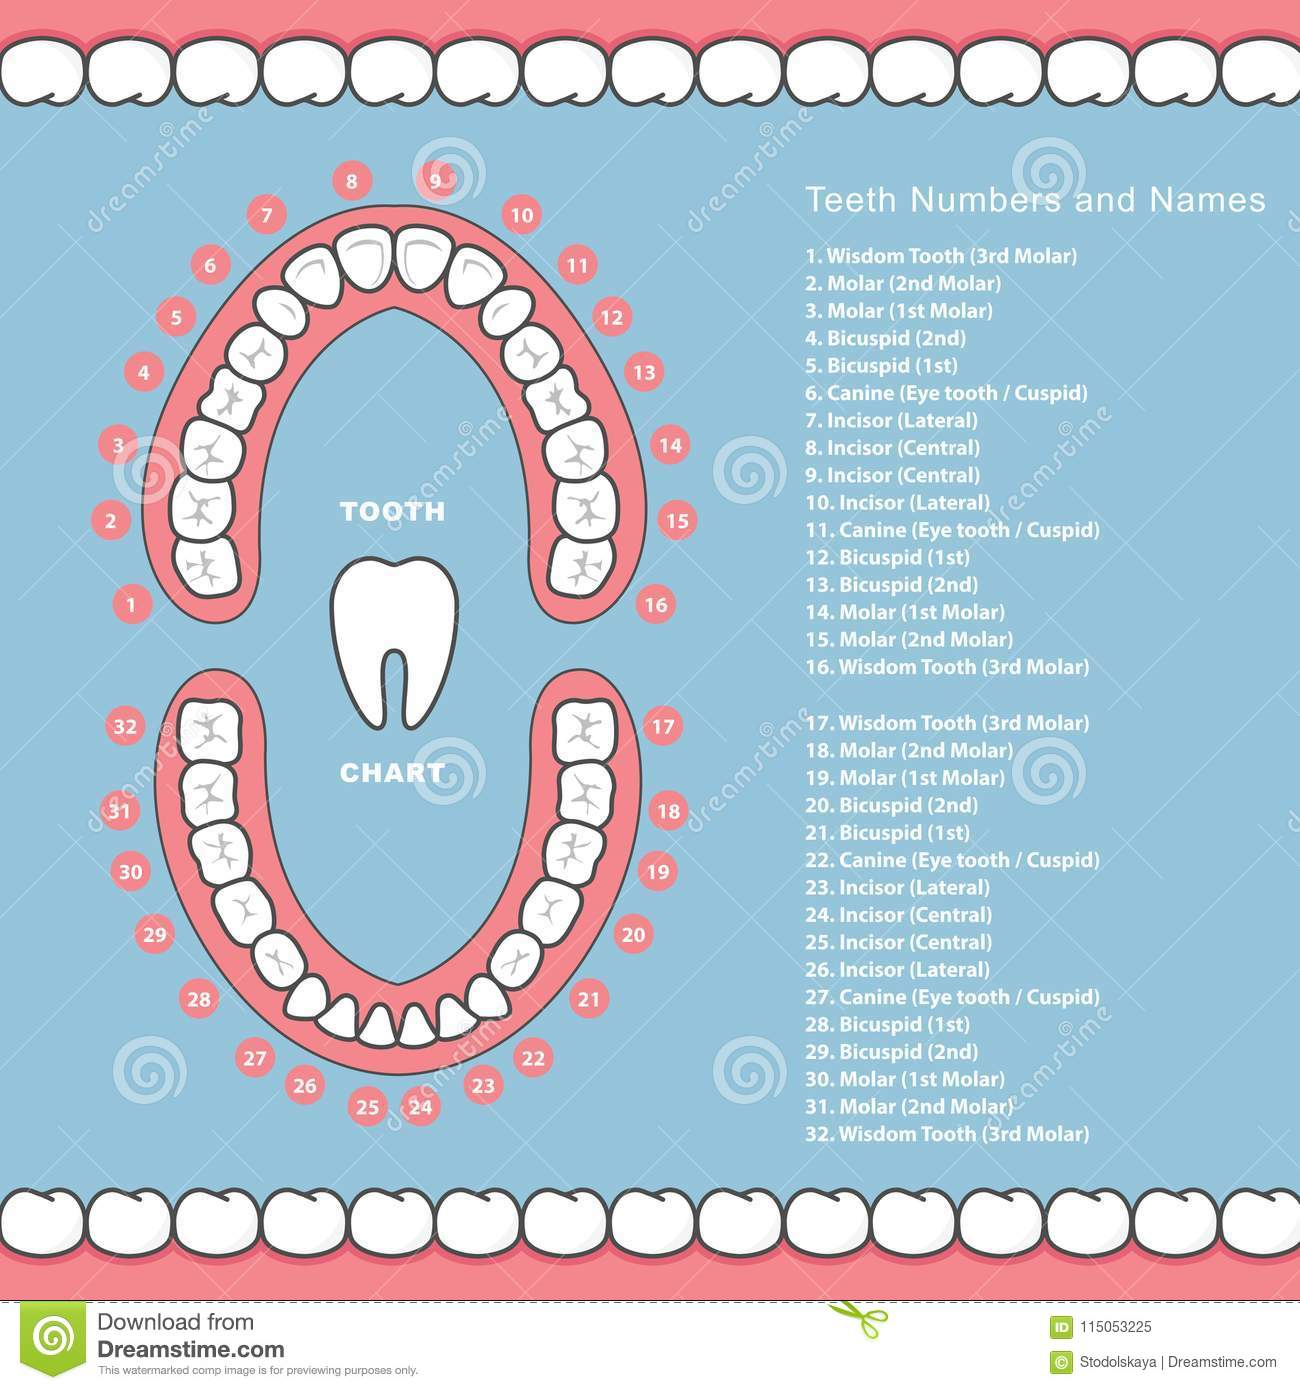 Tooth Chart With Names